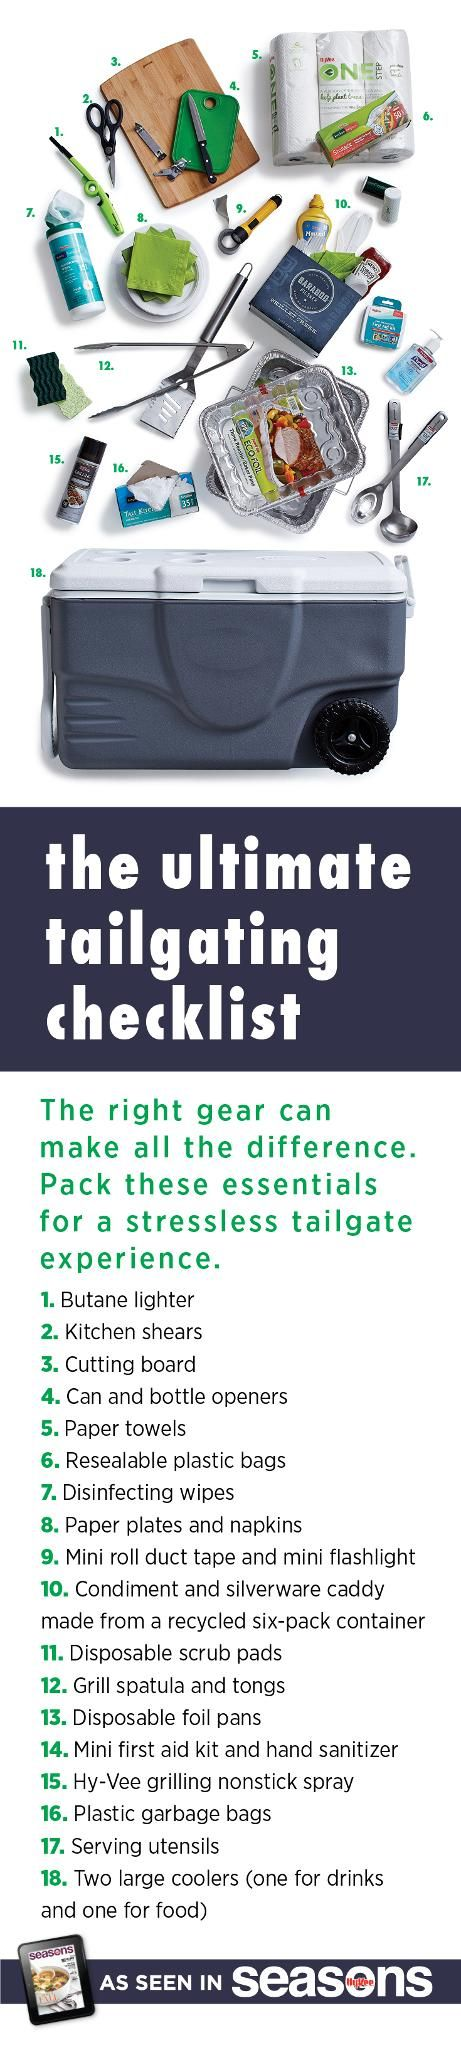 The right #tailgating gear can make all the difference. Pack these essentials for a stress-free tailgate experience.